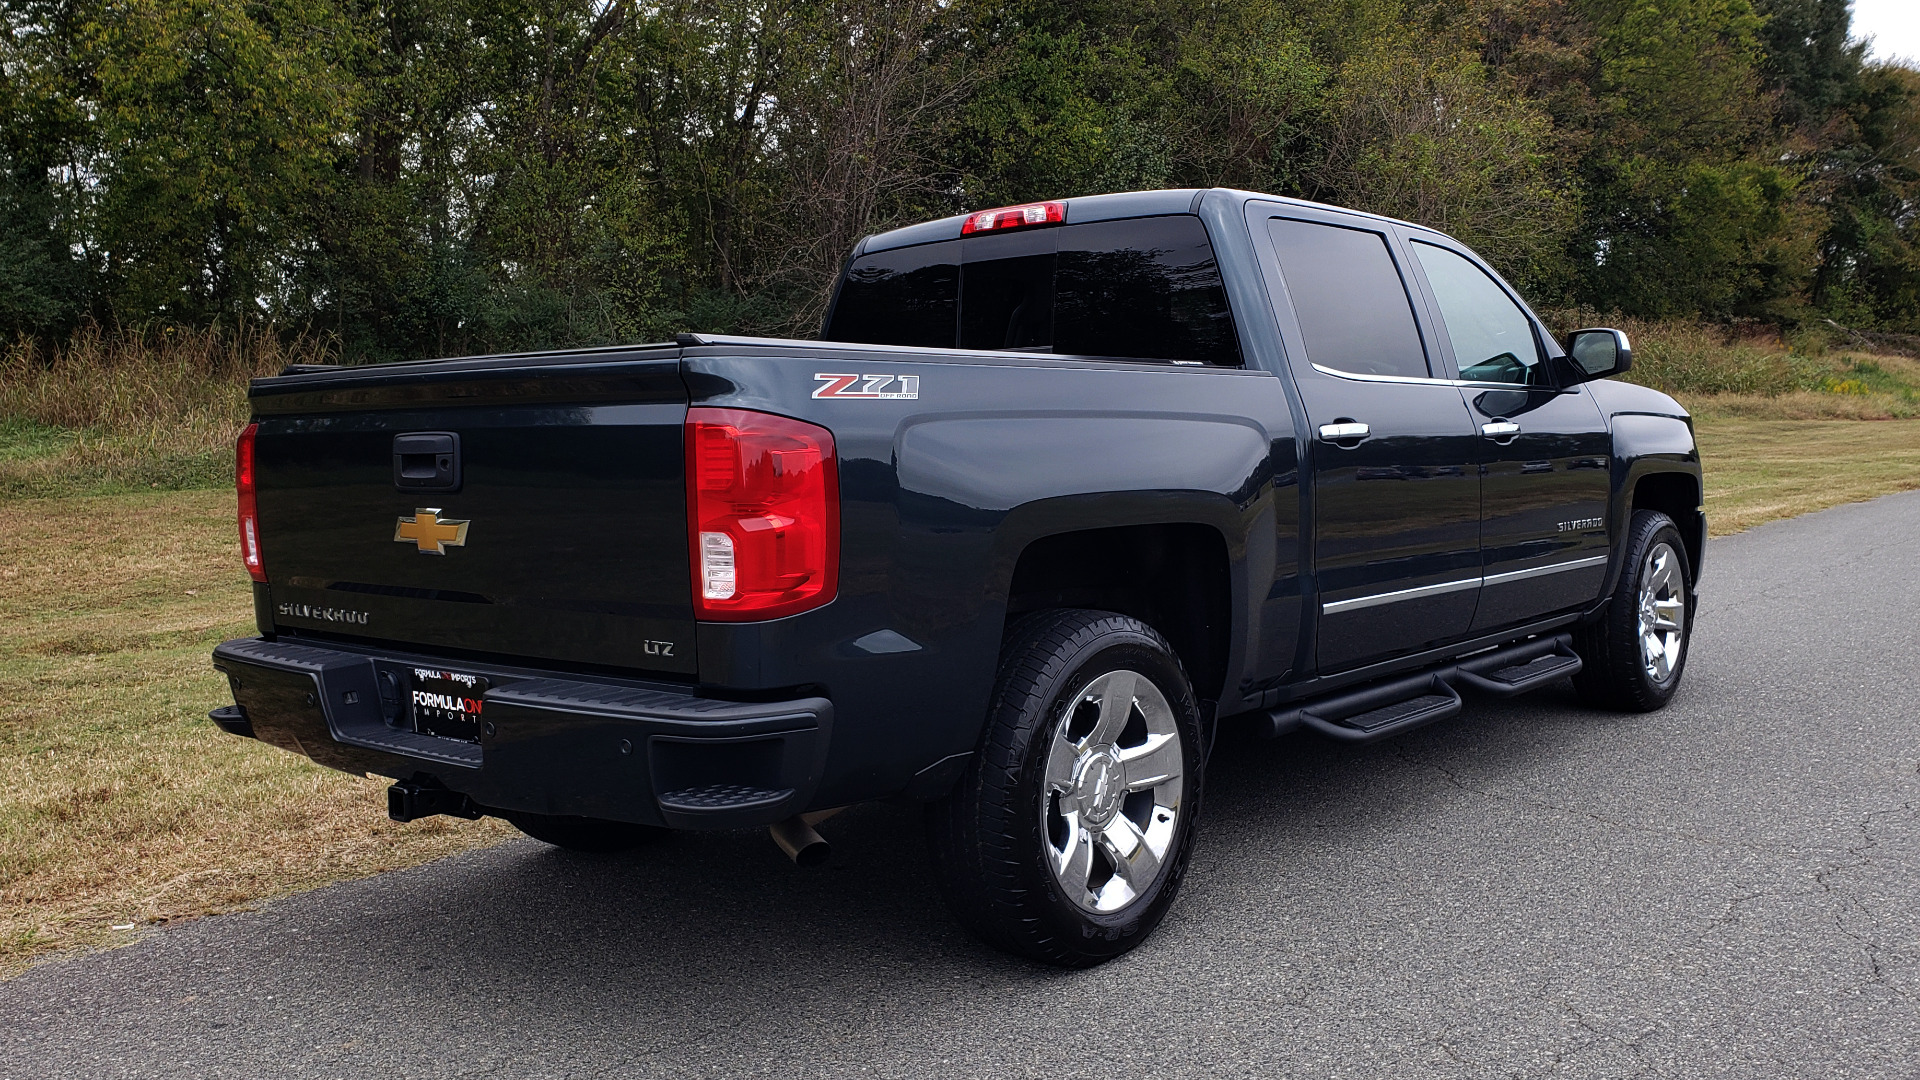 Used 2017 Chevrolet SILVERADO 1500 LTZ 4WD / NAV / BOSE / LEATHER / CAMERA / LOADED for sale Sold at Formula Imports in Charlotte NC 28227 25